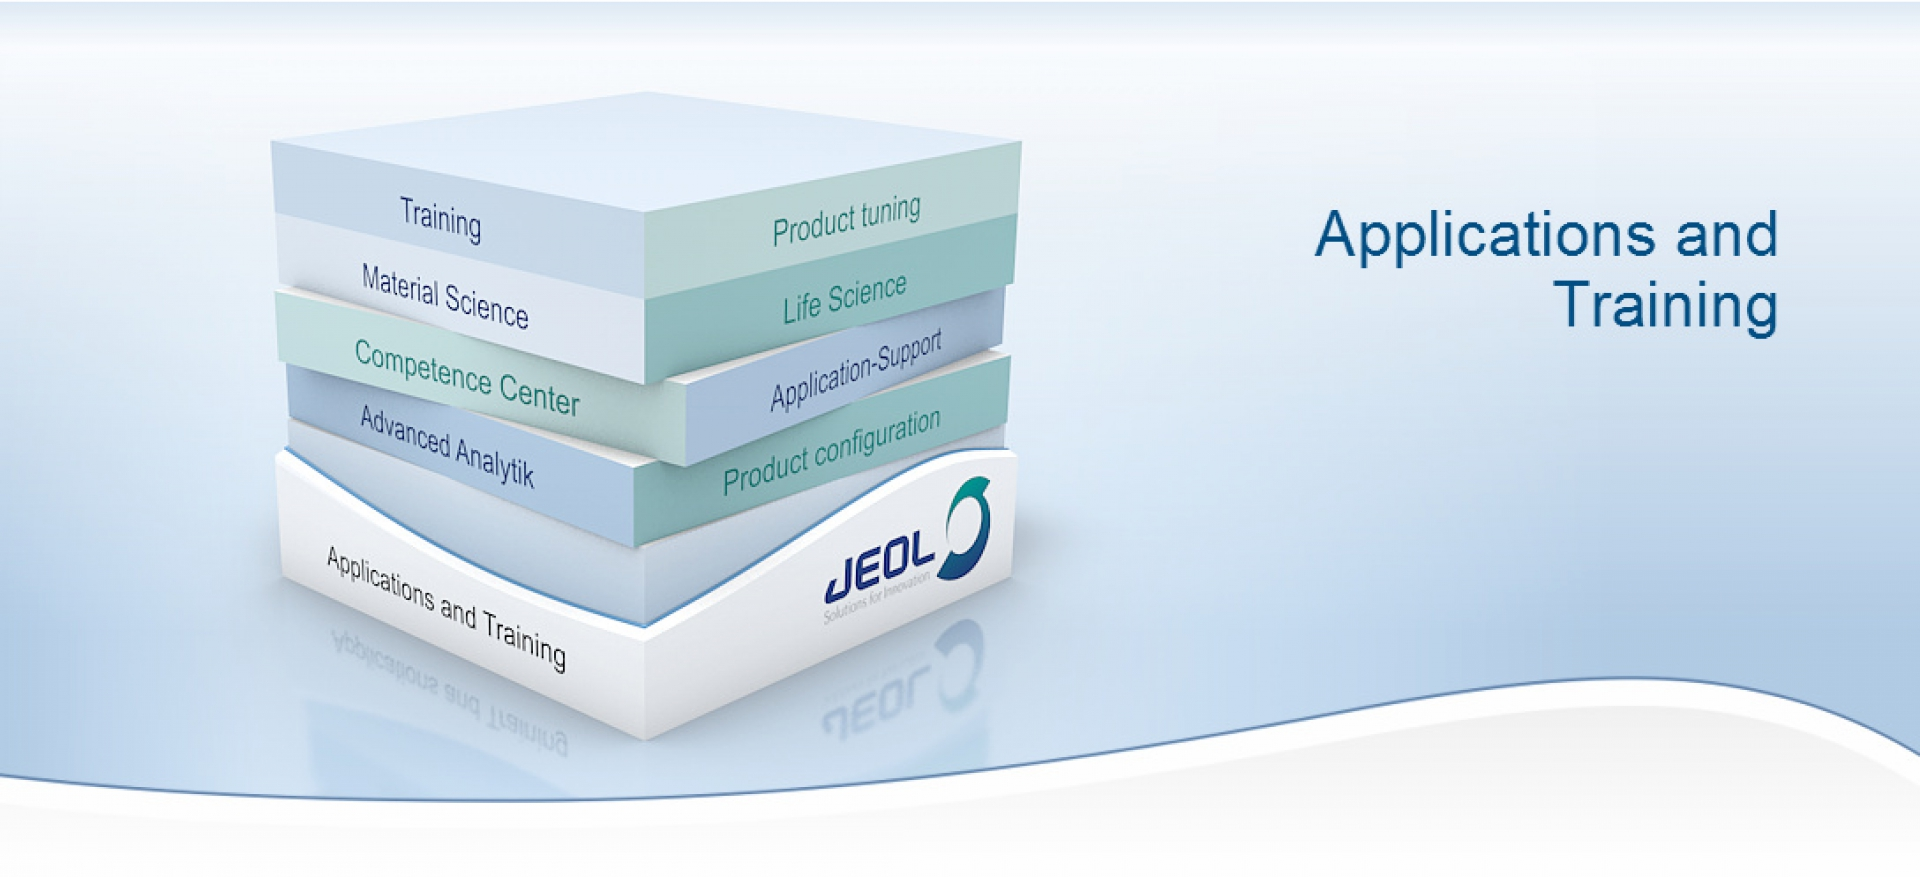 JEOL - Applications and Training